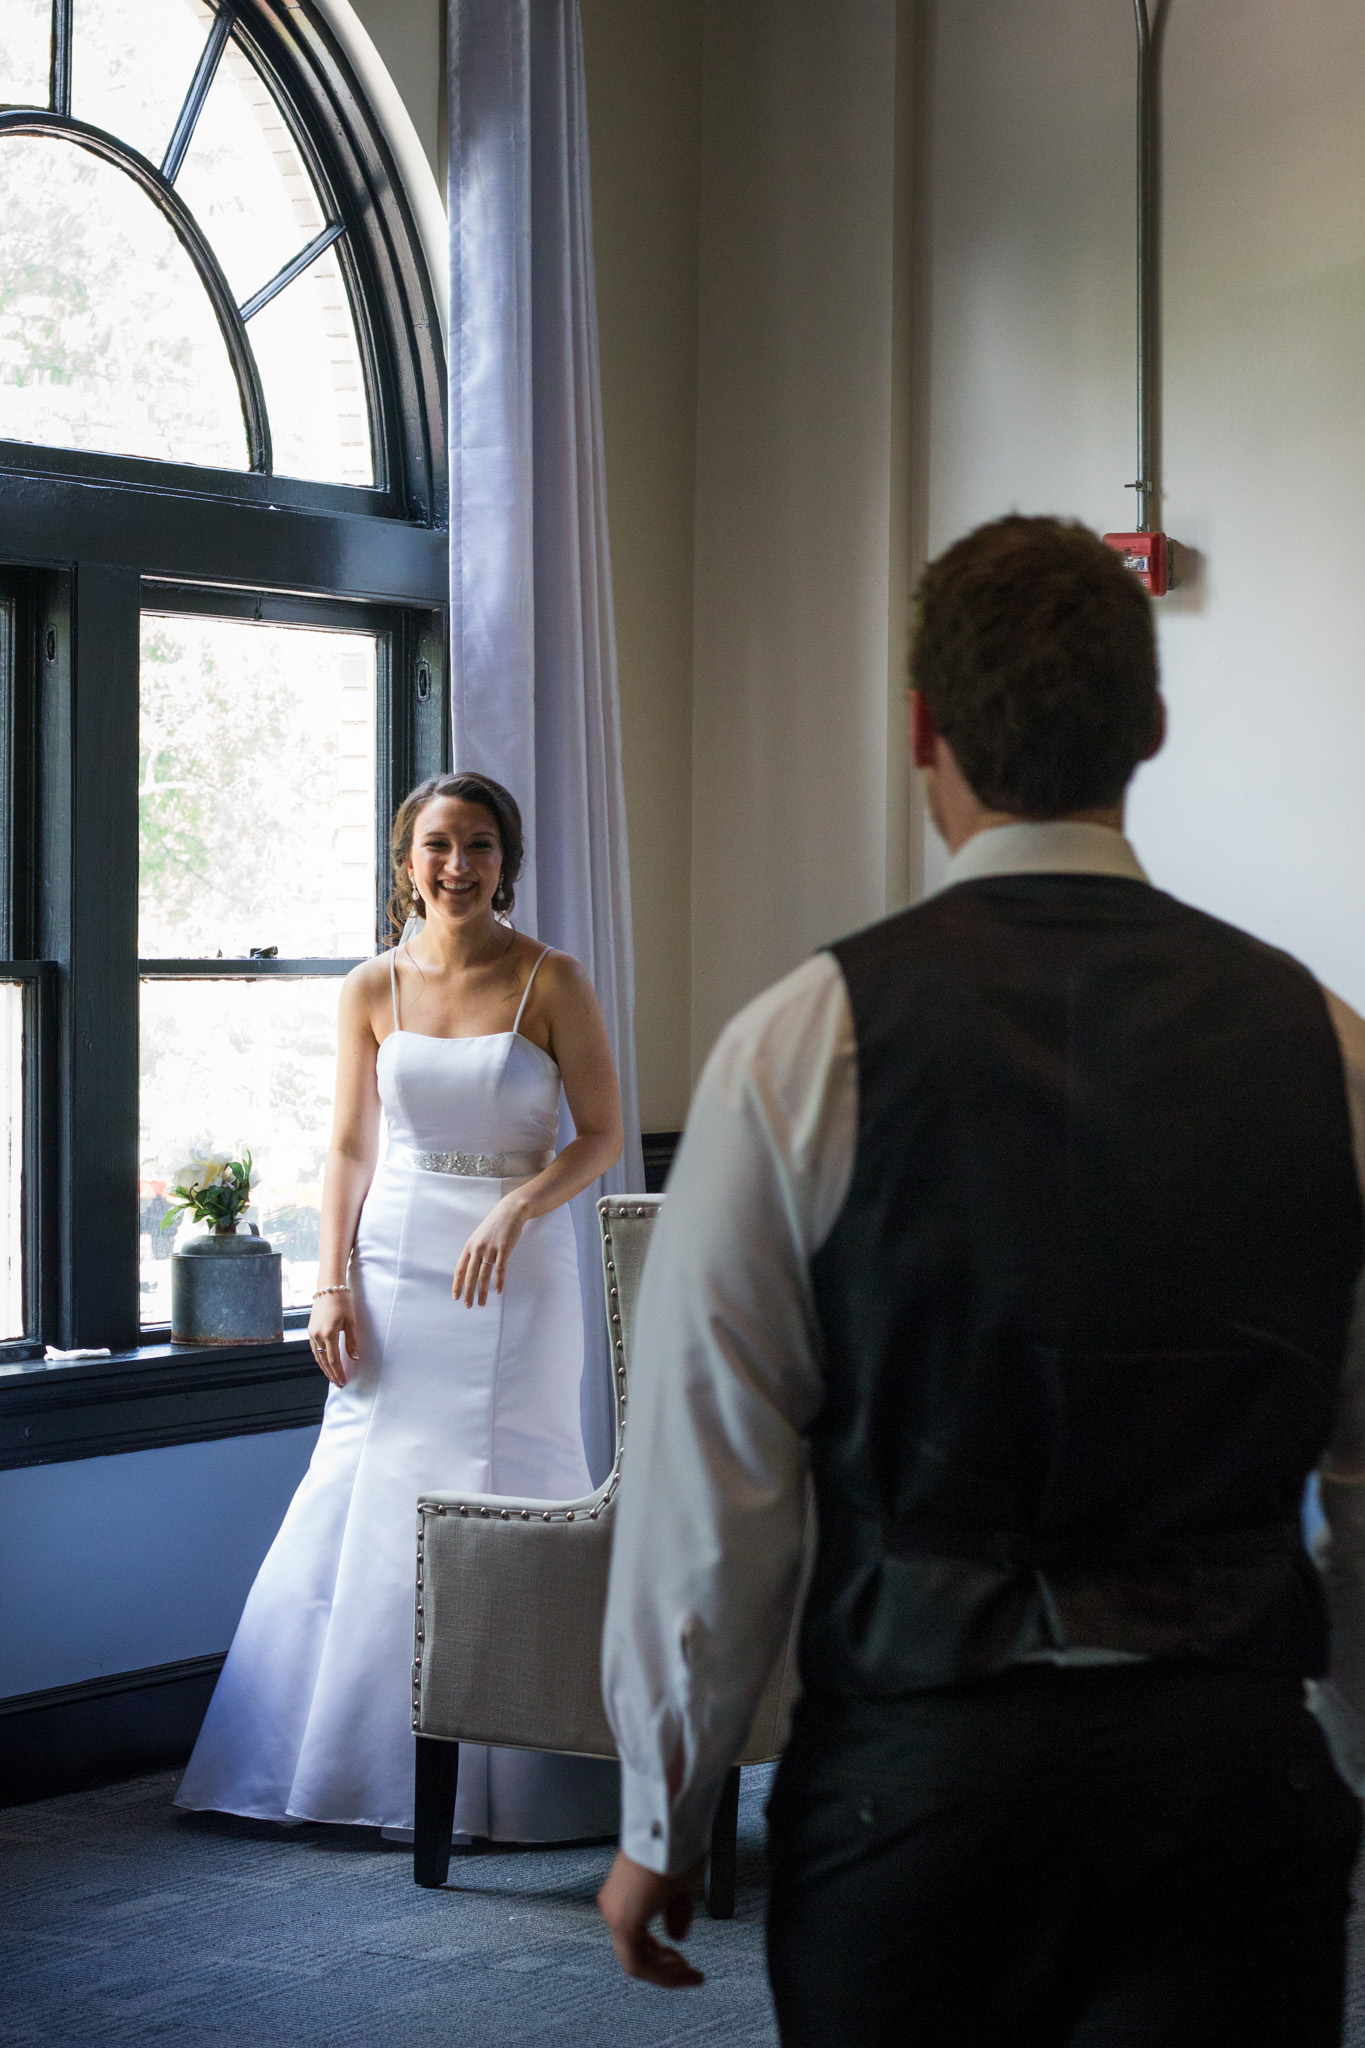 214 Martin Street, Wedding Photography, Wedding Dress, First Look, Groom